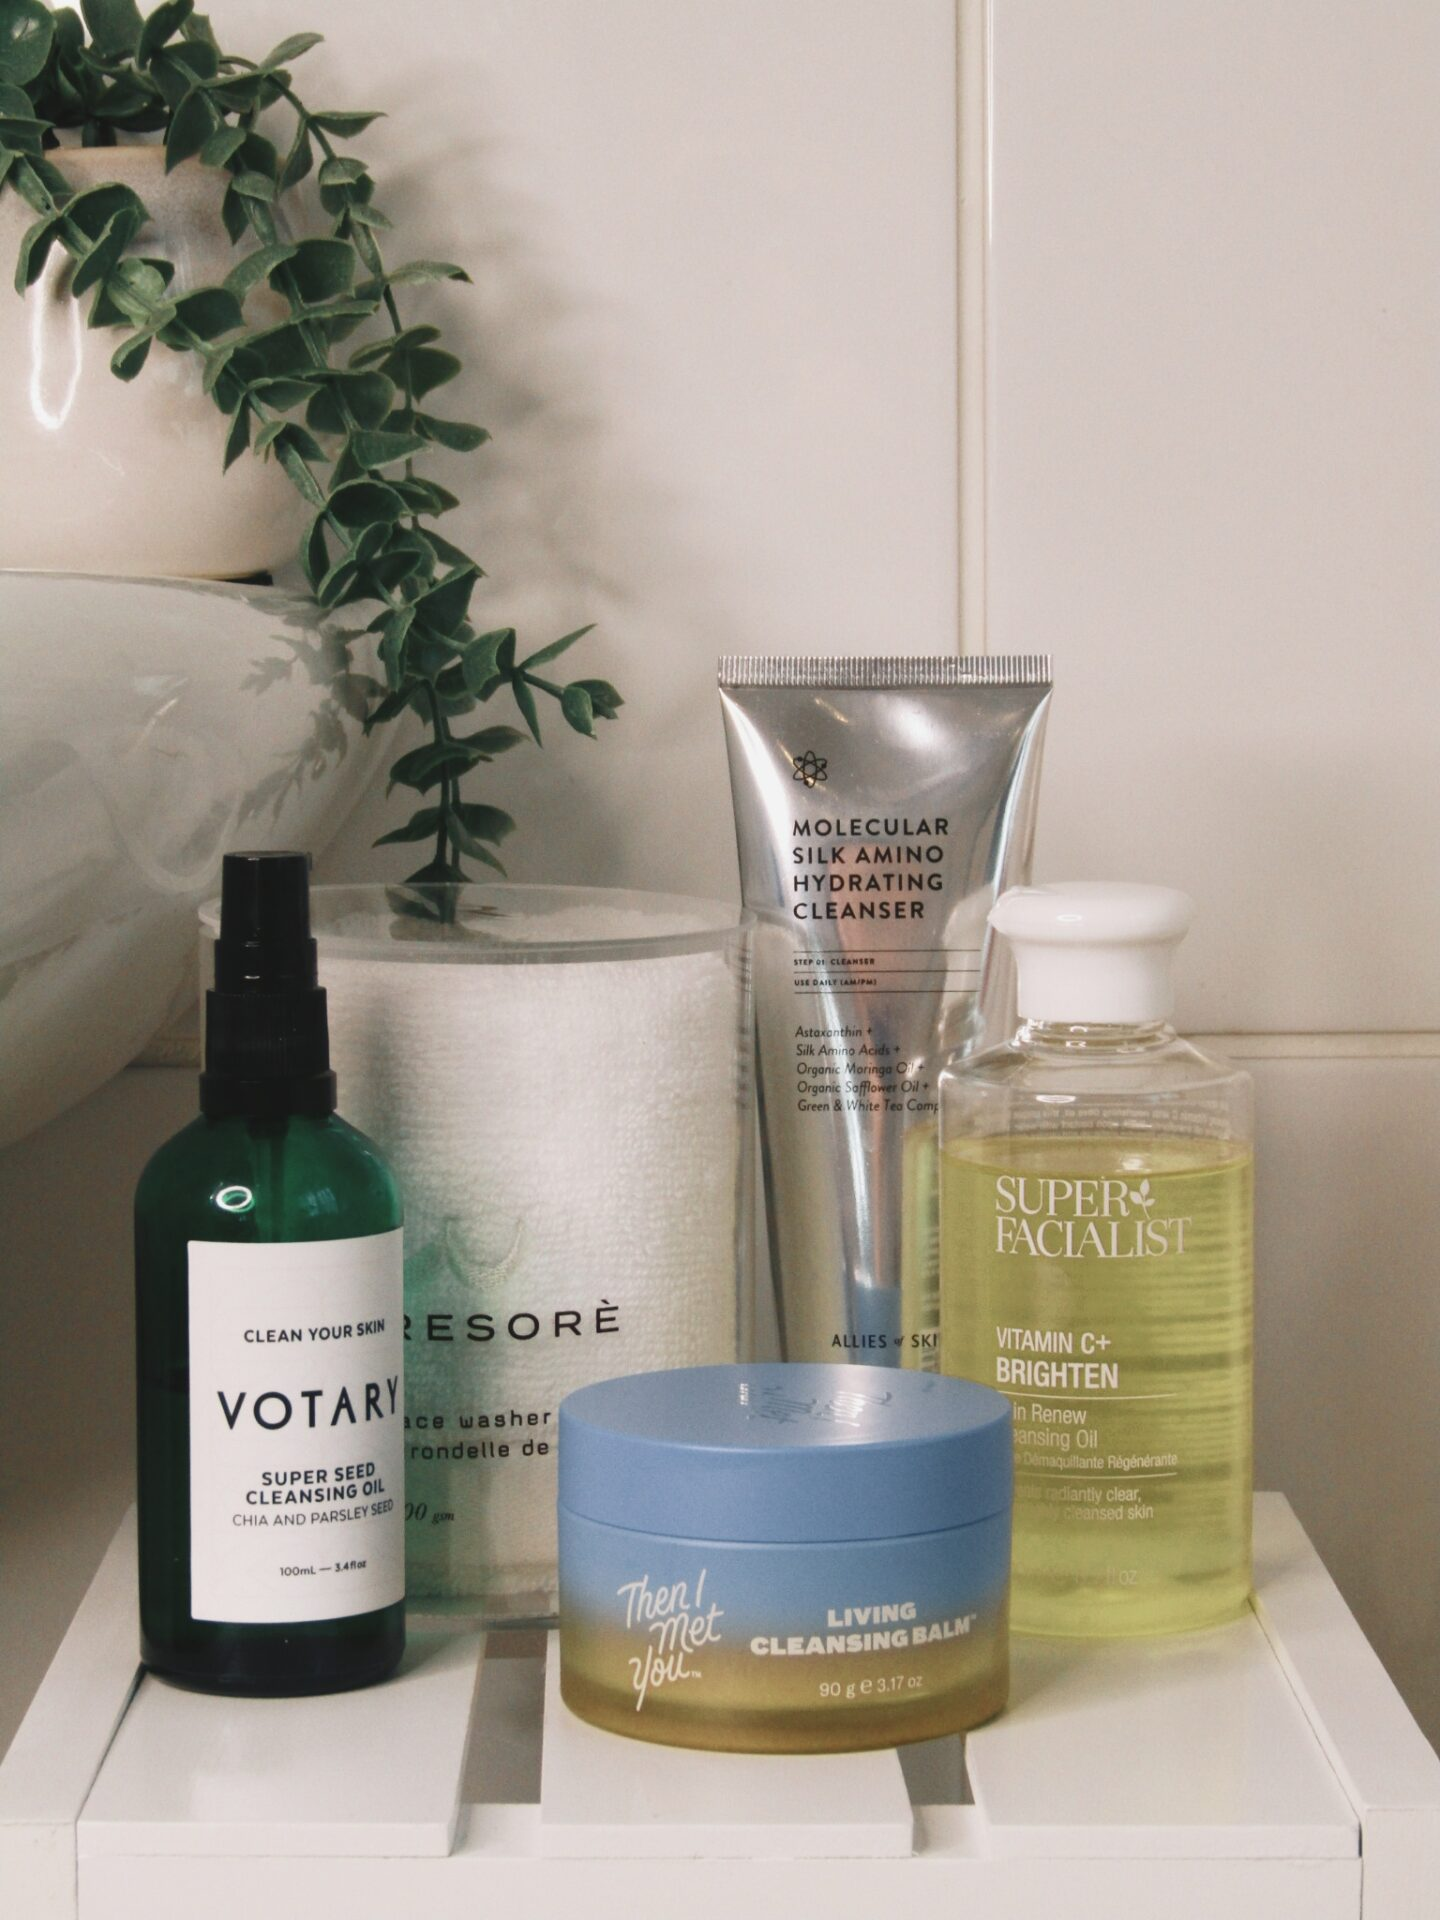 Top 5 favourite cleansers